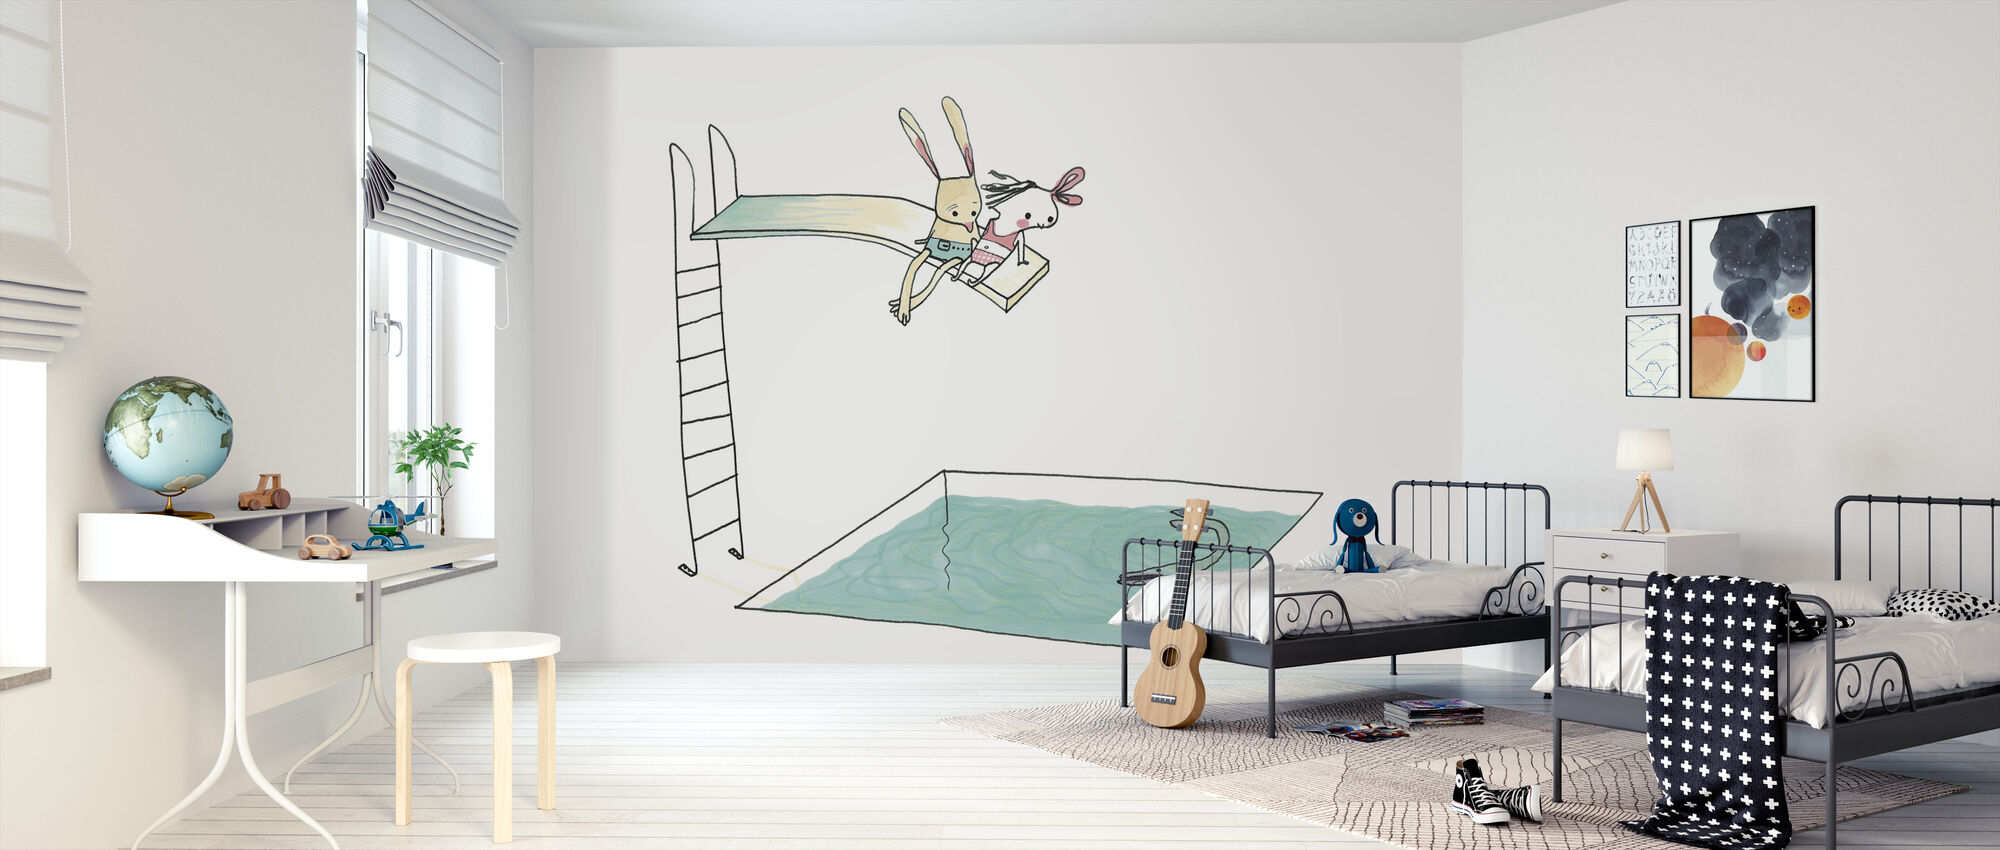 On the Trampoline Near The Rabbit - Wallpaper - Kids Room